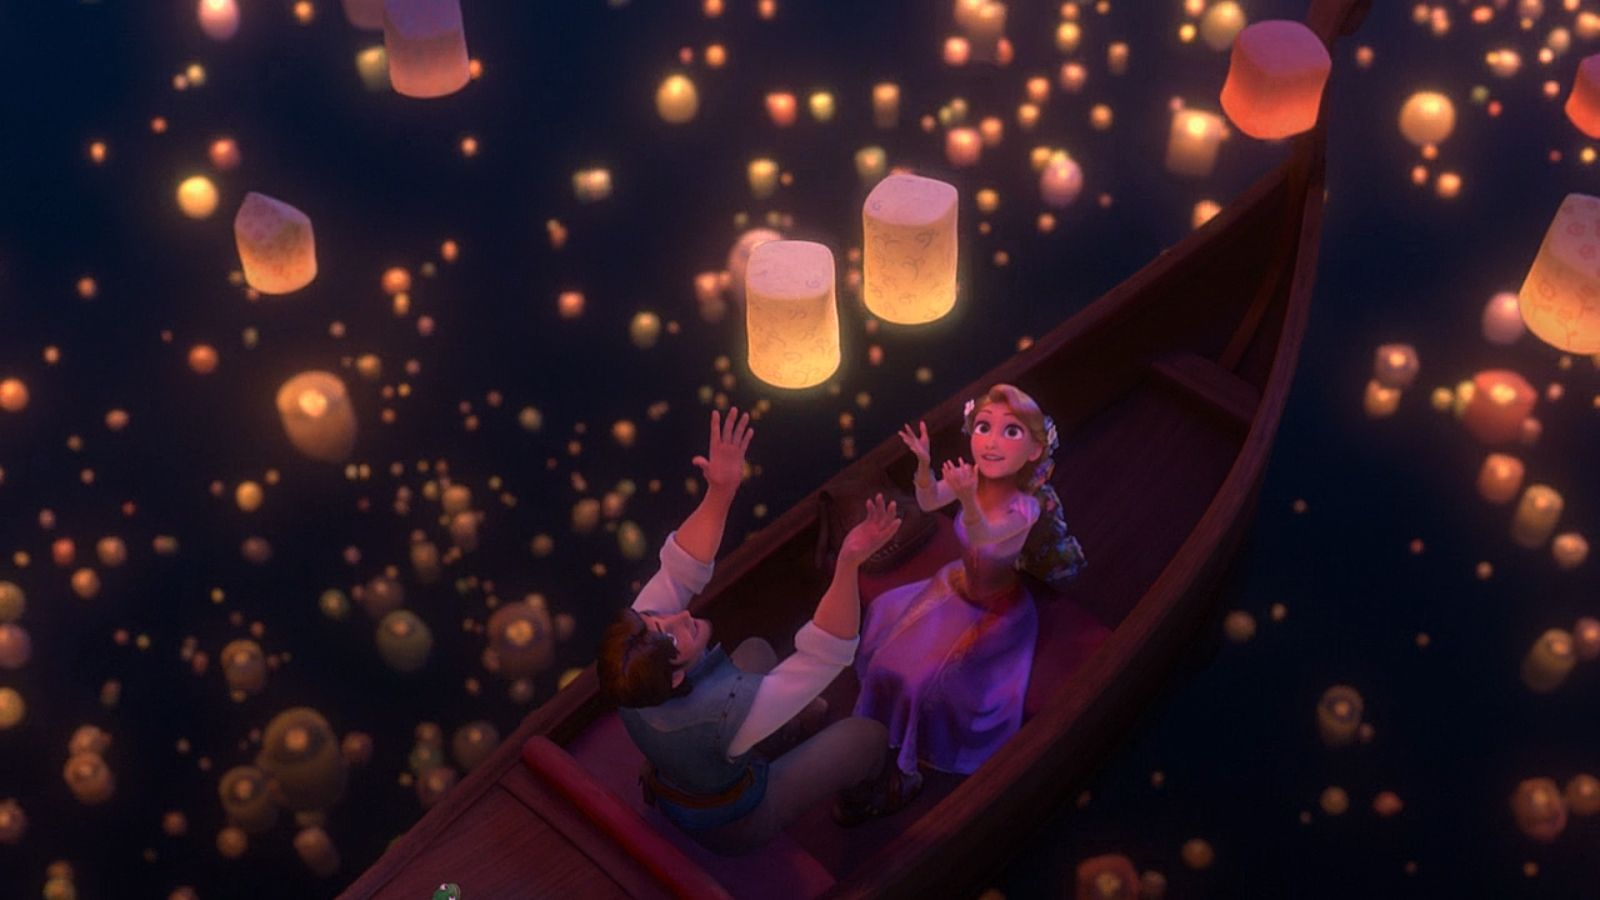 Tangled Pc Wallpapers On Wallpaperdog